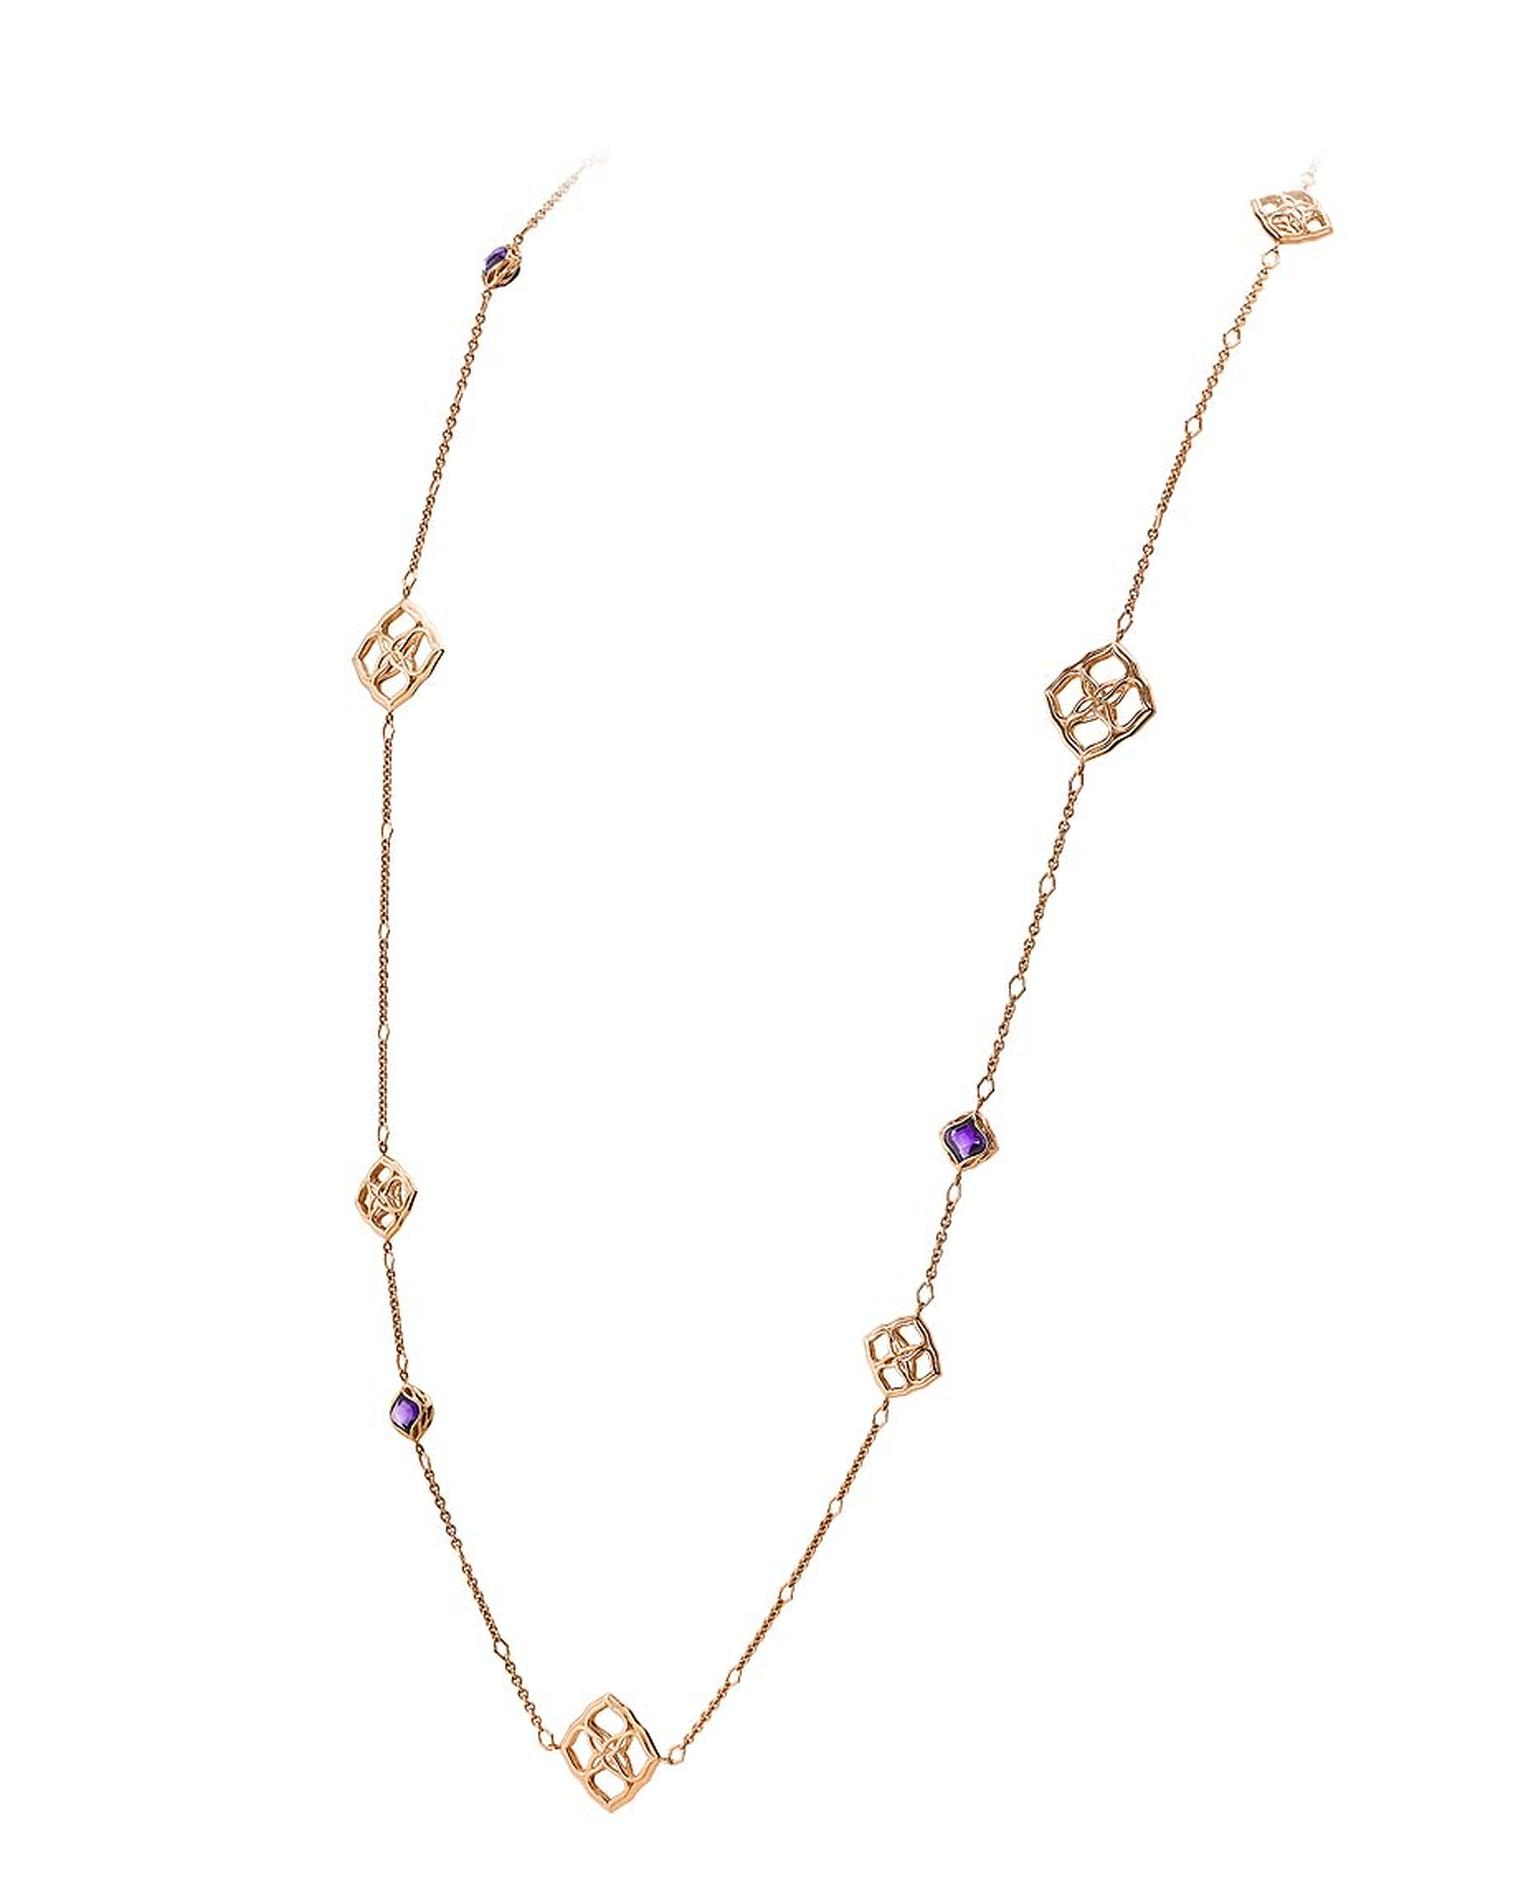 Chopard necklace from the Imperiale collection with diamond-set arabesques and faceted amethysts on a long rose gold chain.